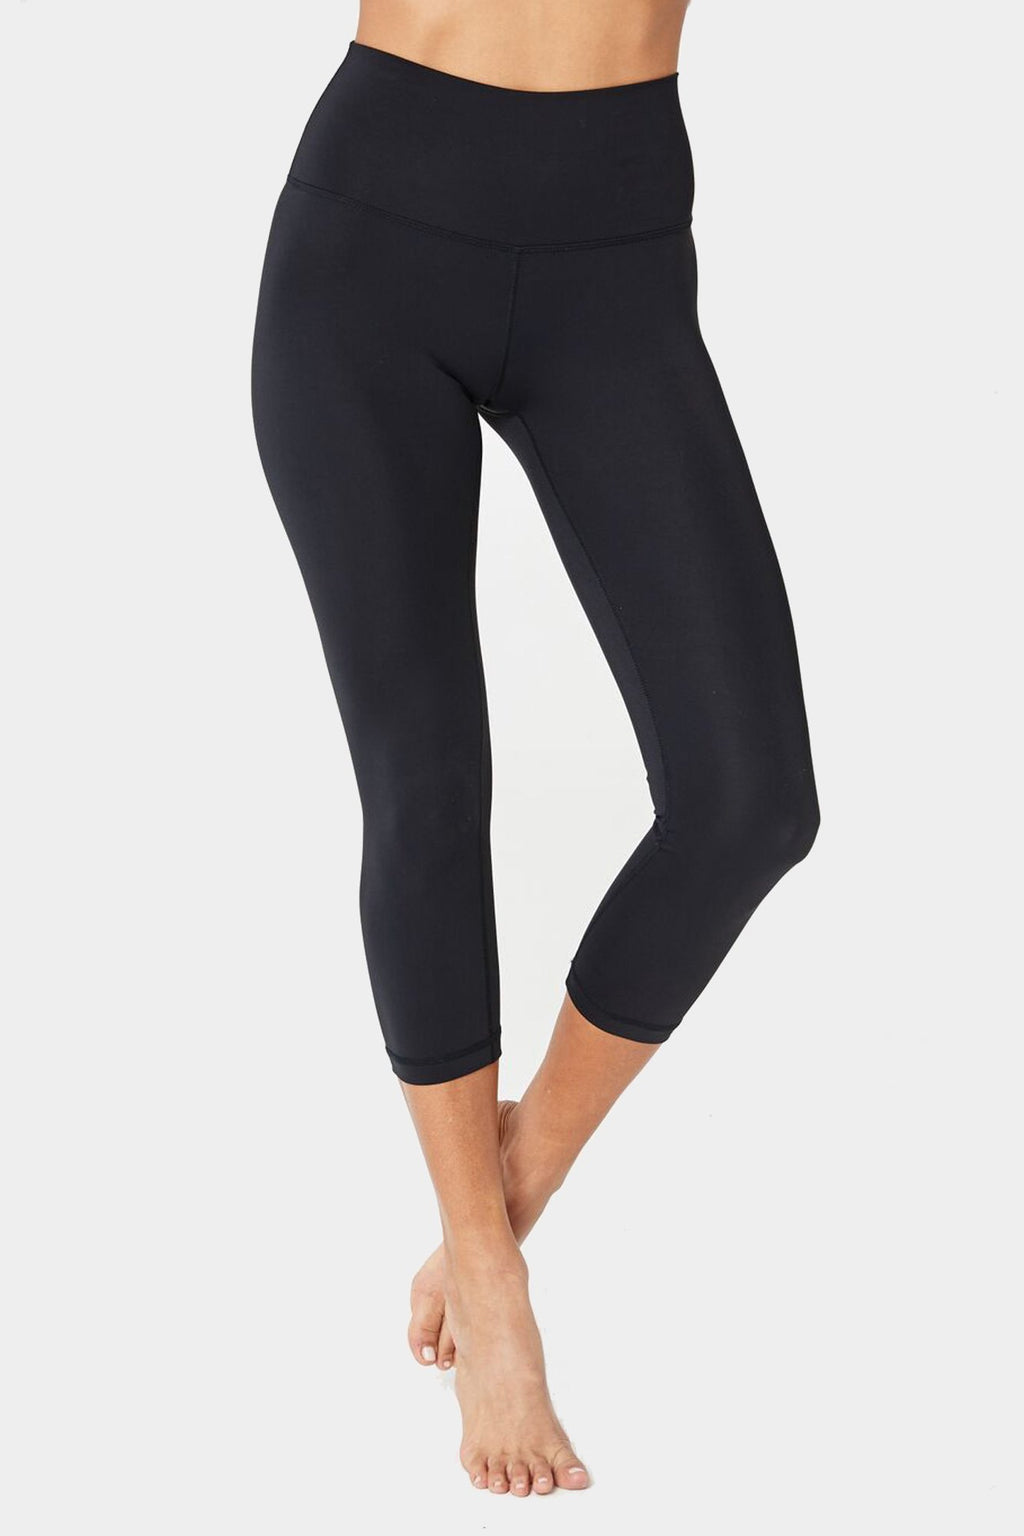 Model is wearing black, high waist spiritual gangster leggings. The perfect high waist crop legging are cropped mid-calf.